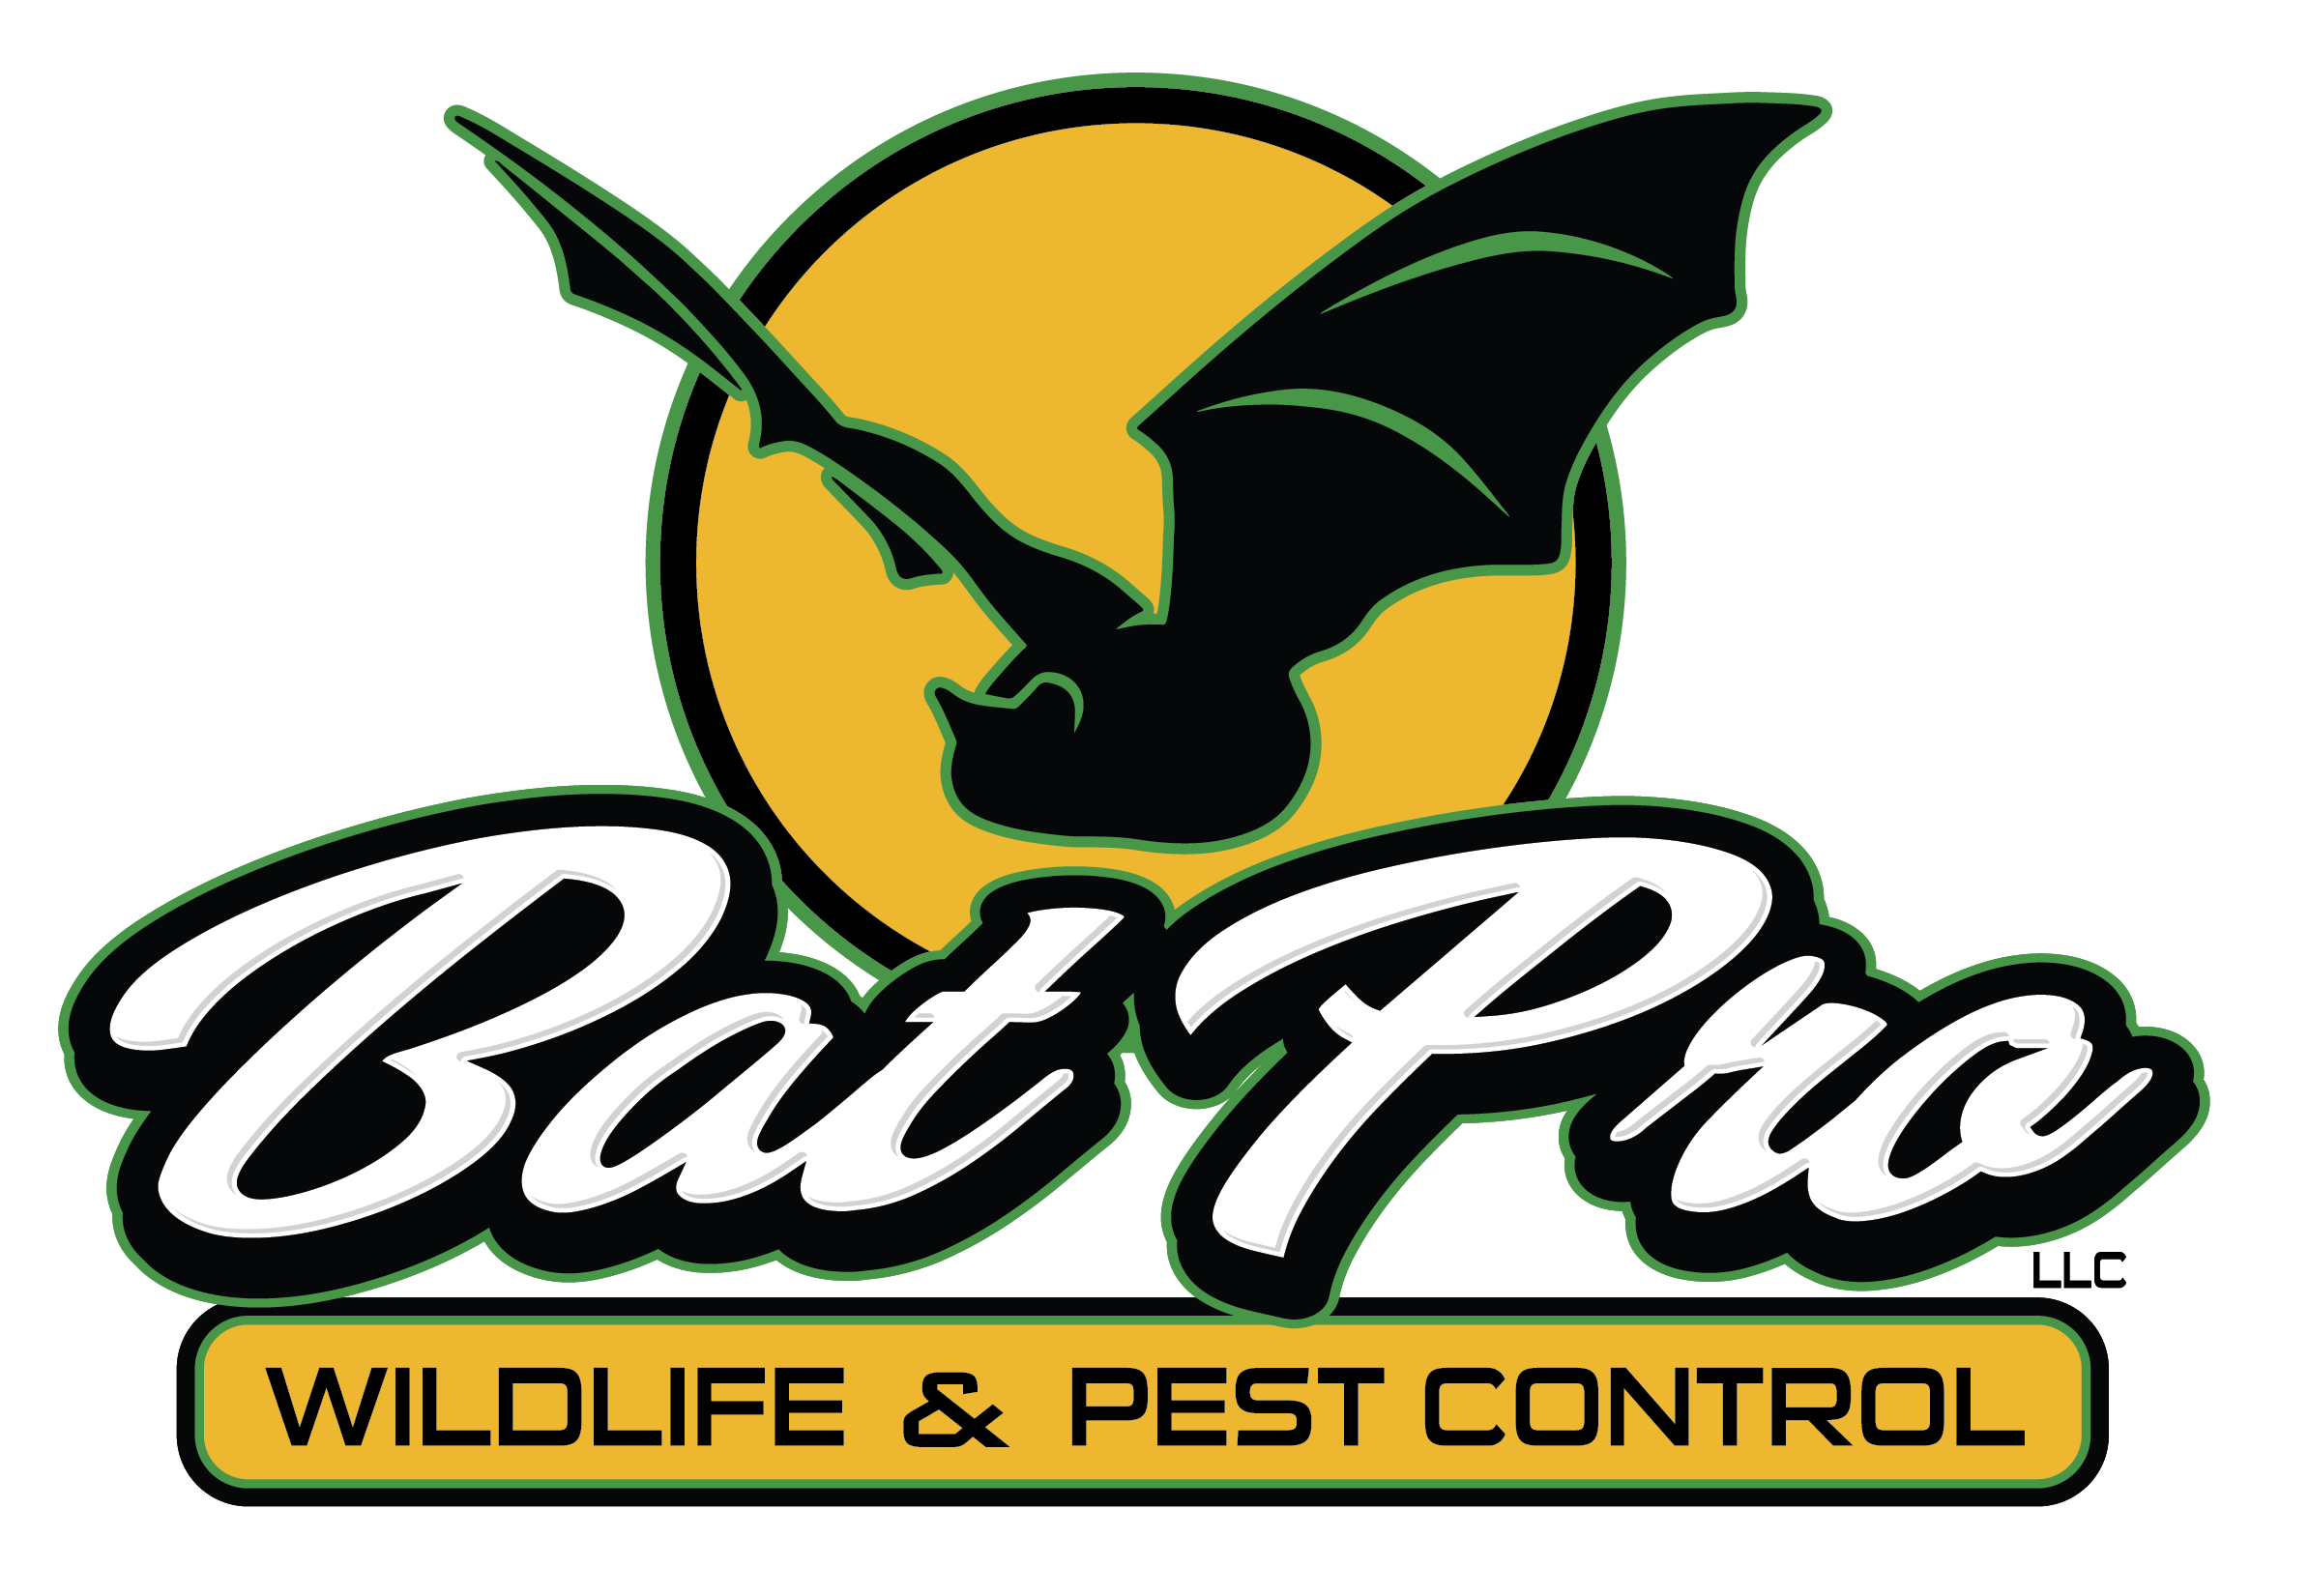 BatPro® Wildlife & Pest Control, LLC